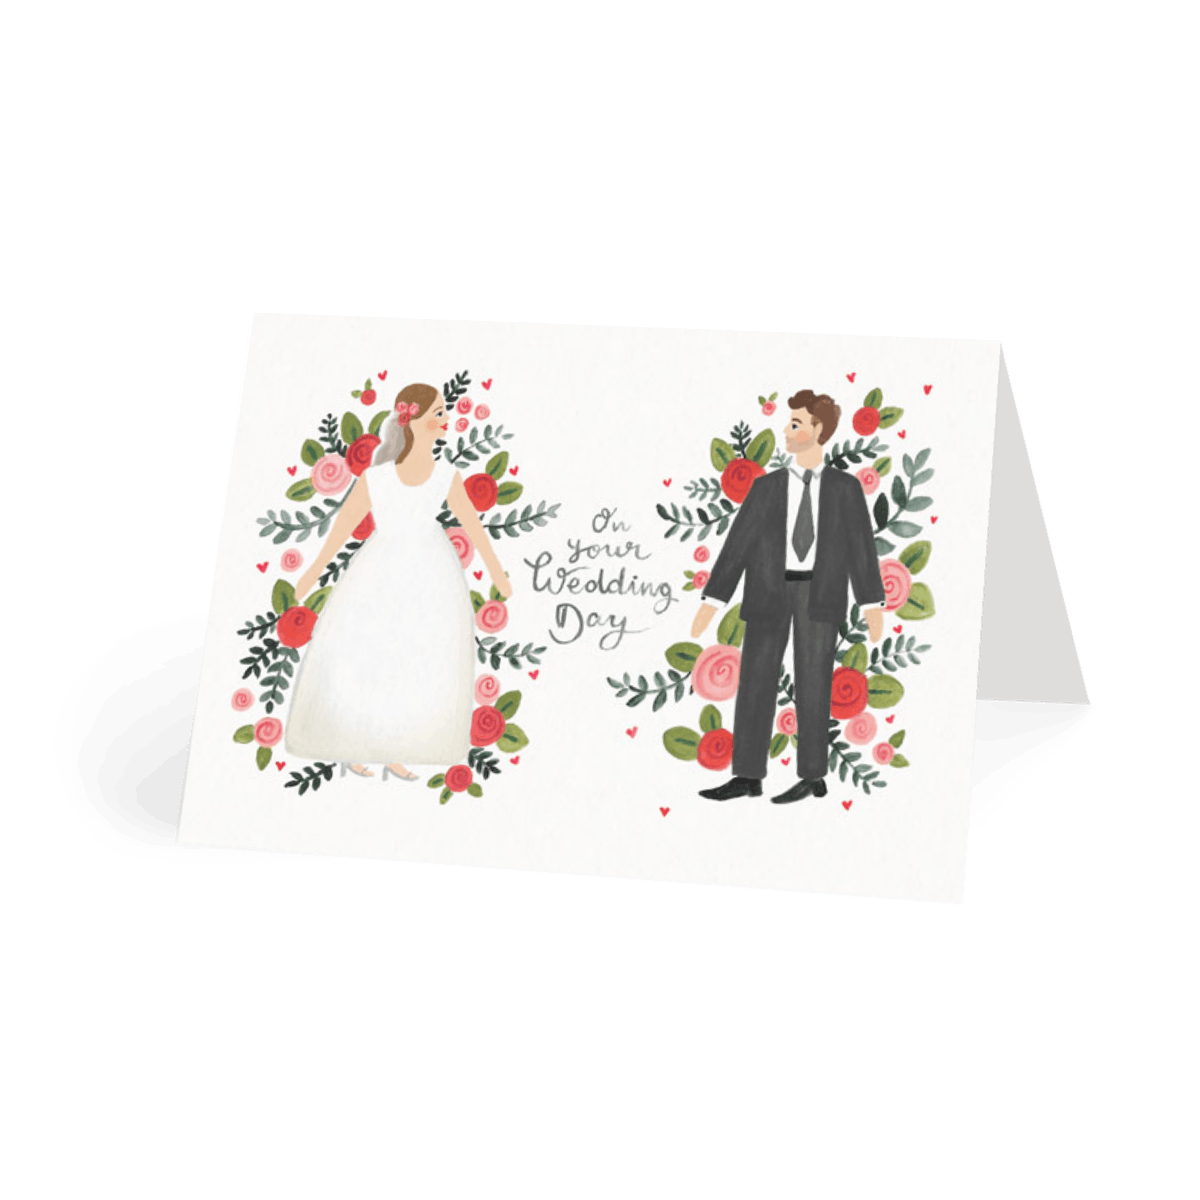 Https%3a%2f%2fwww.papier.com%2fproduct image%2f61954%2f14%2fwedding day 14696 vorderseite 1547812077.png?ixlib=rb 1.1